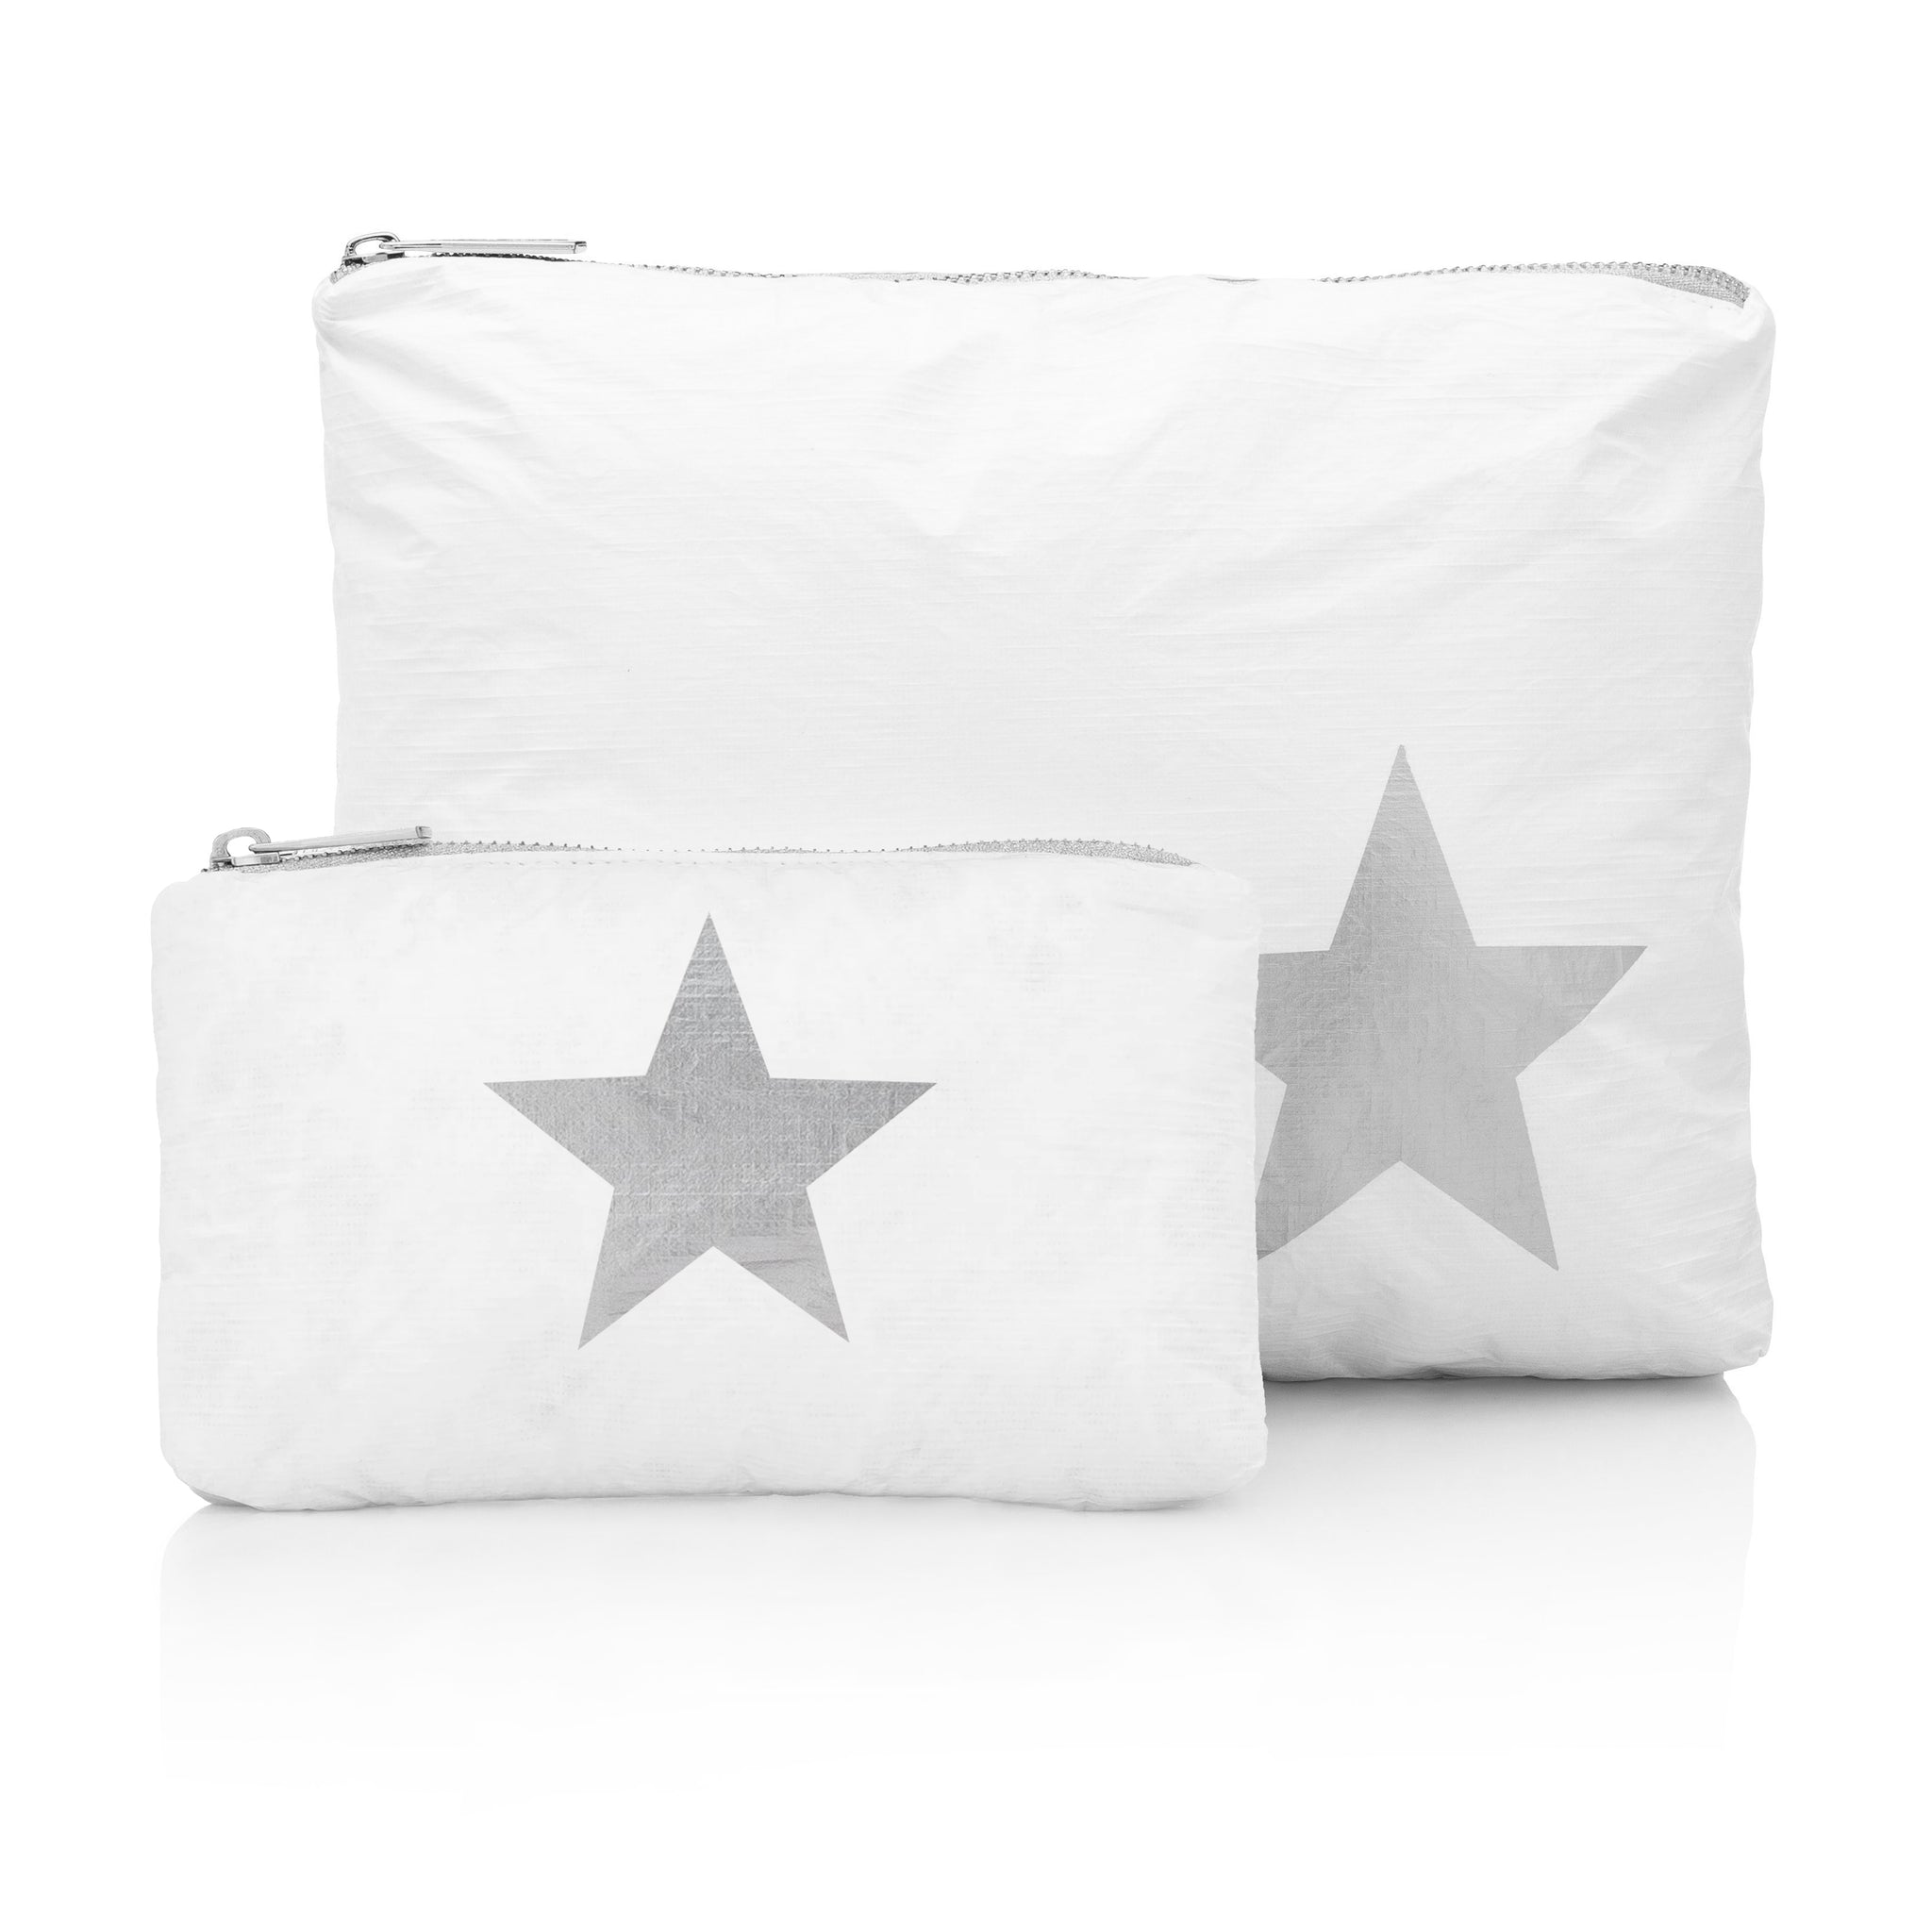 Set of Two Packs - White with a Metallic Silver Star